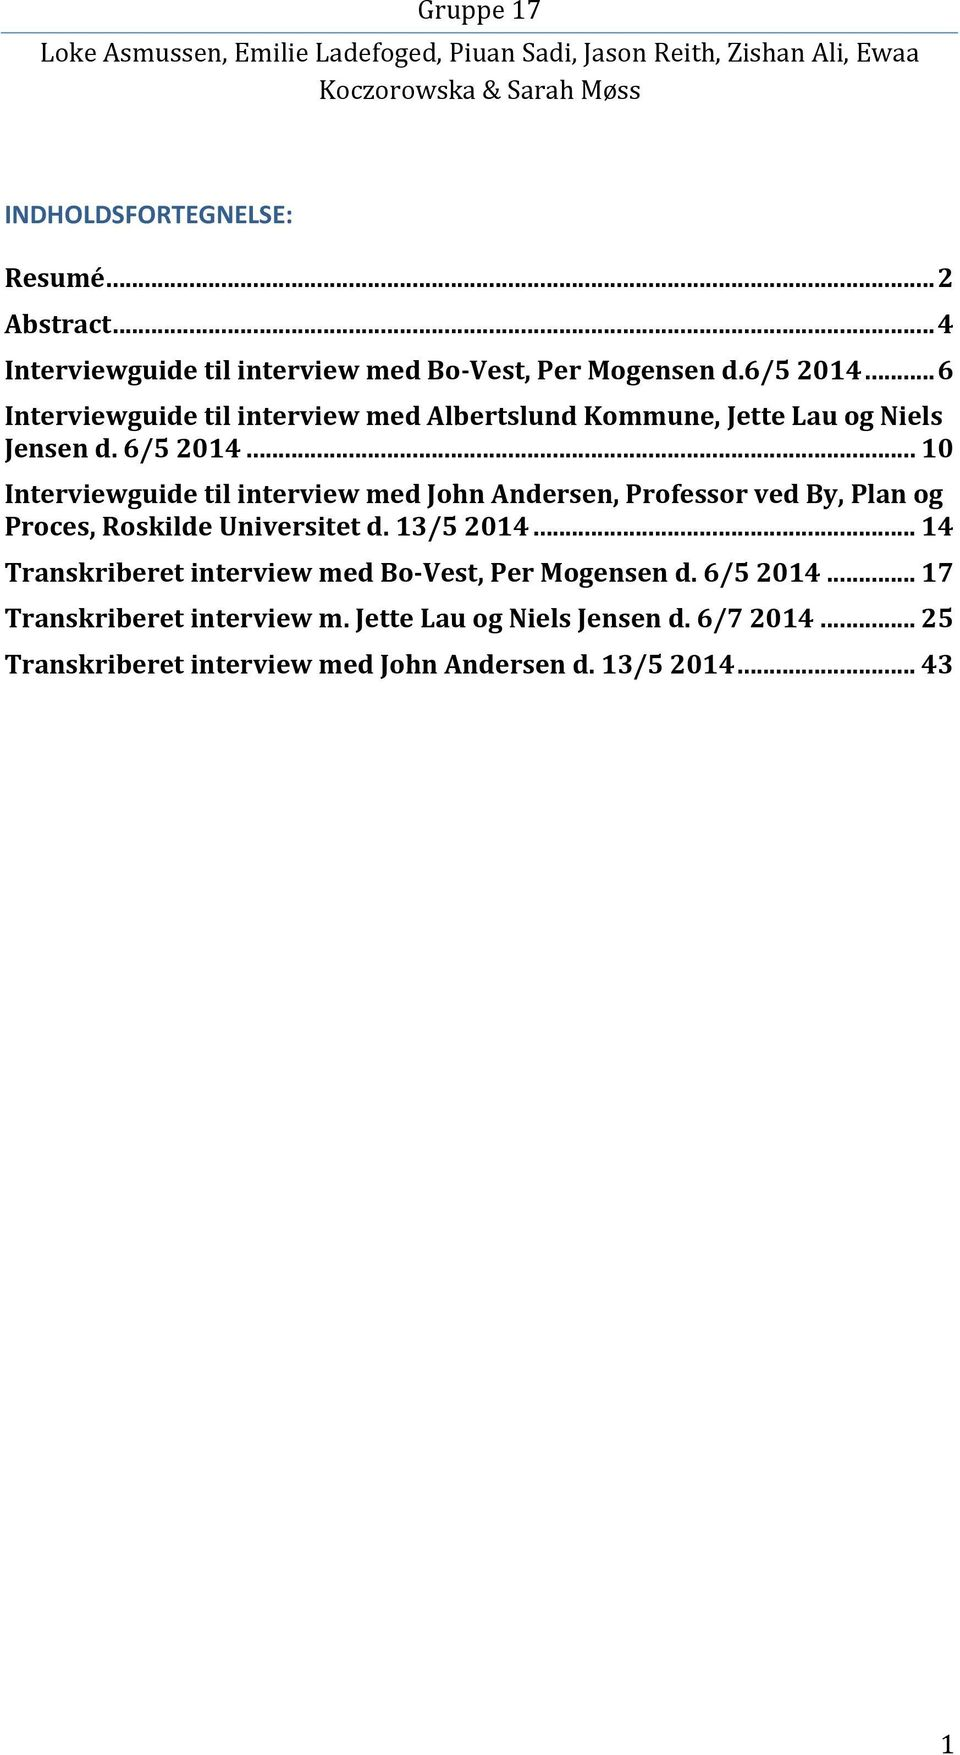 .. 10 Interviewguide til interview med John Andersen, Professor ved By, Plan og Proces, Roskilde Universitet d. 13/5 2014.